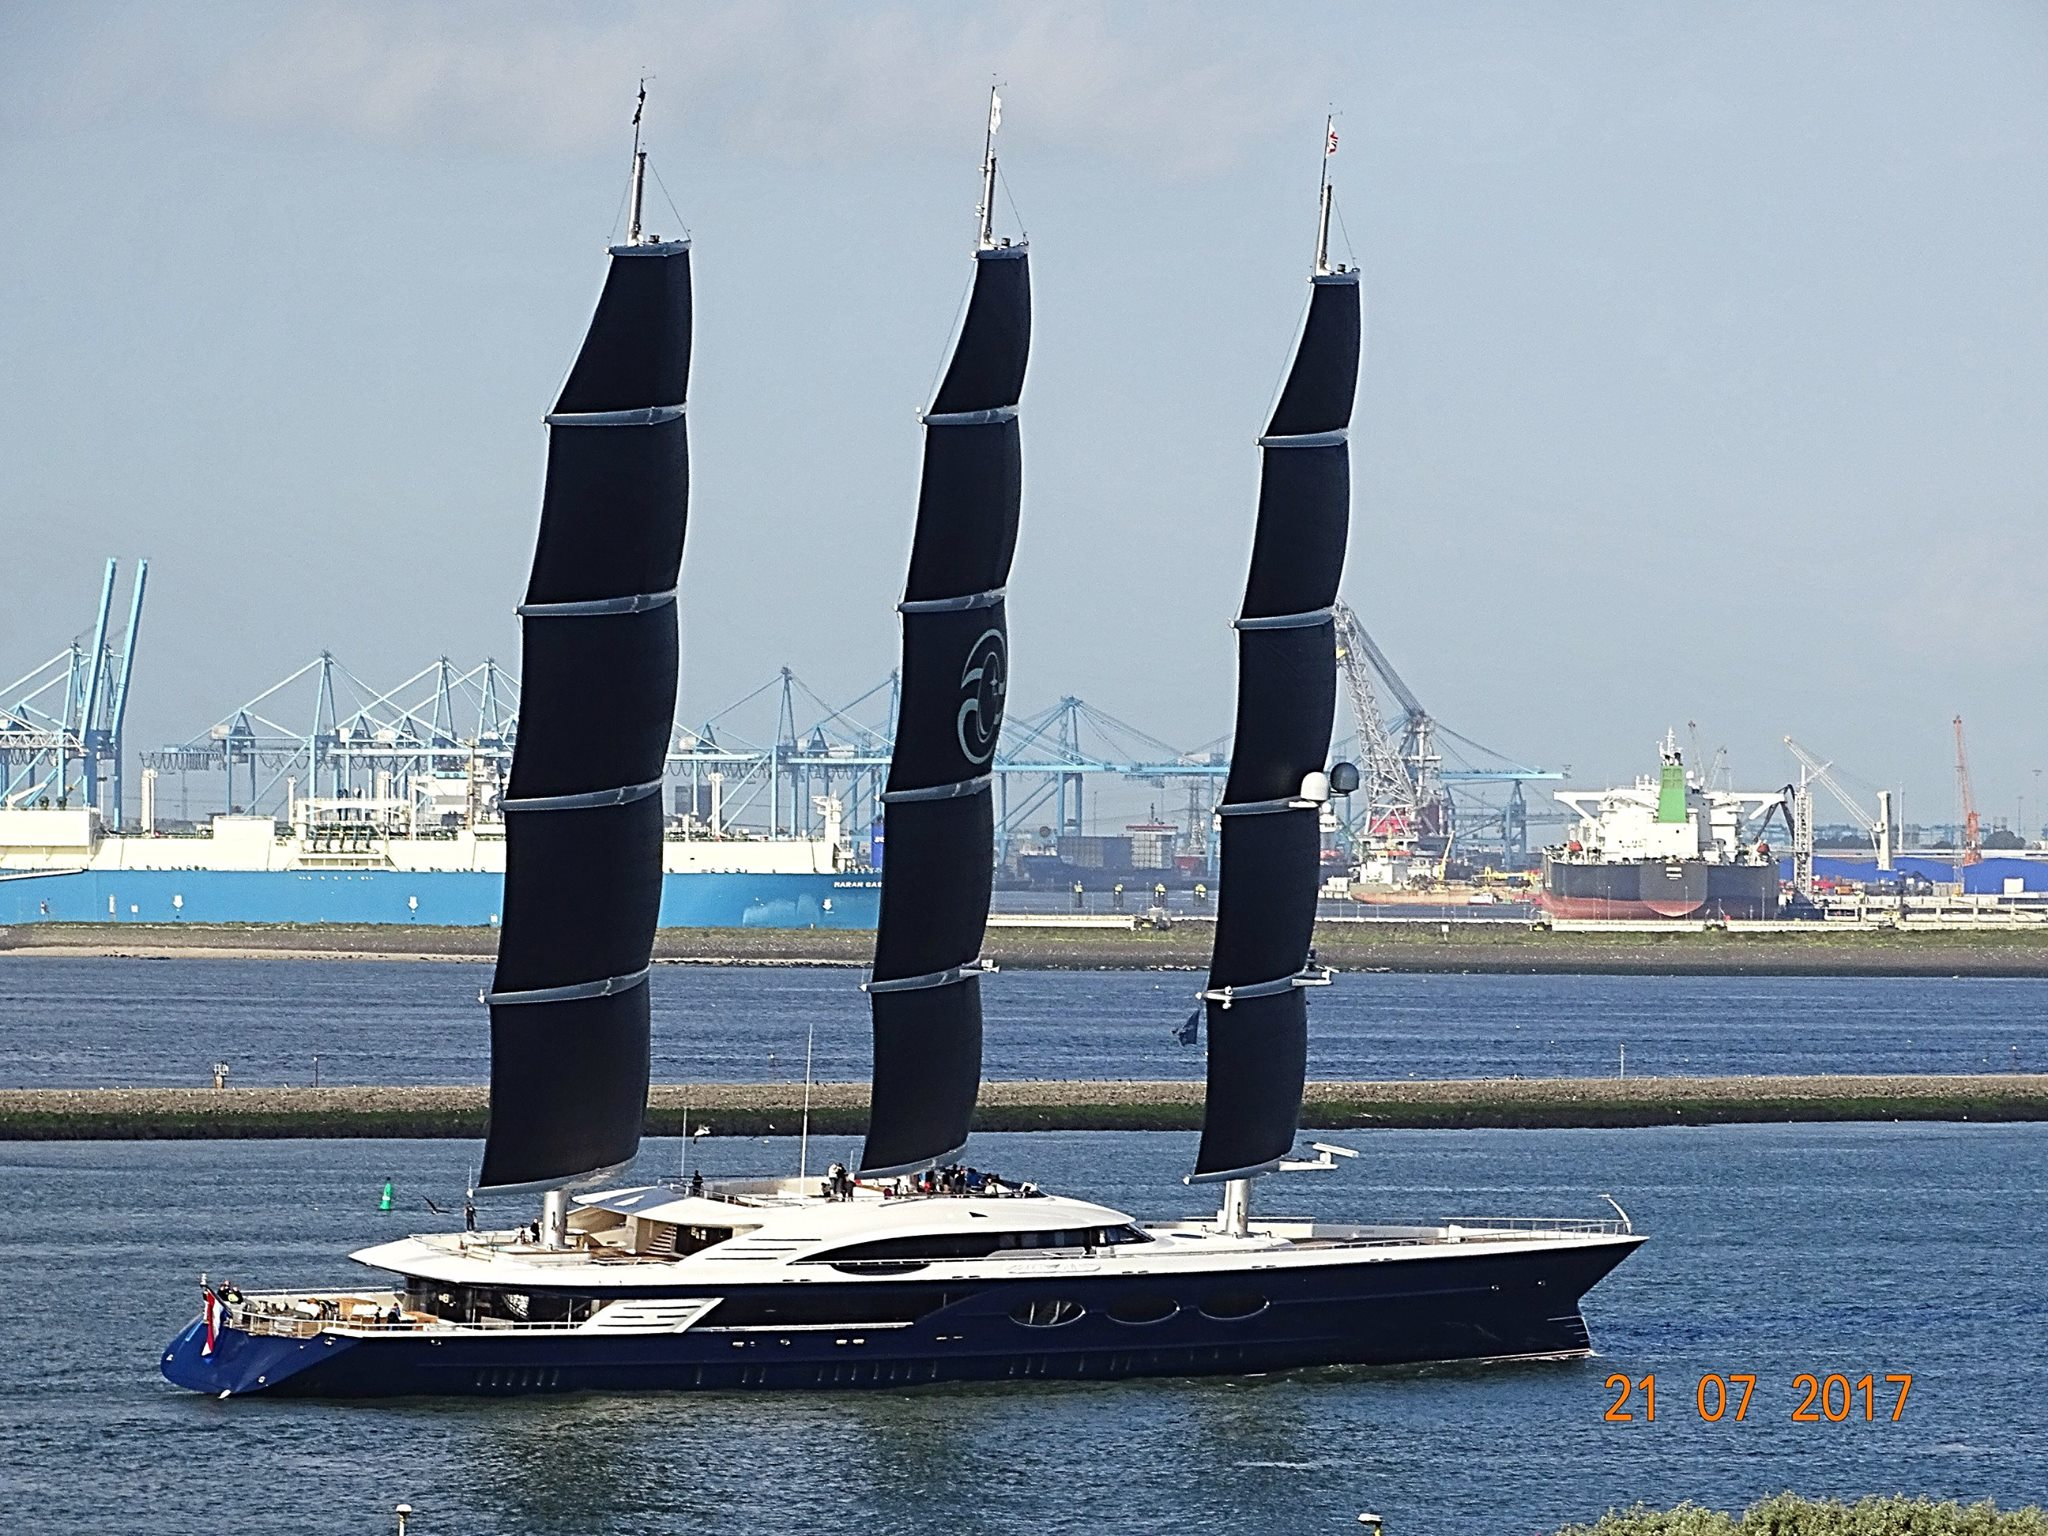 Black Pearl undergoing sea trials with her sails raised - Yacht Harbour